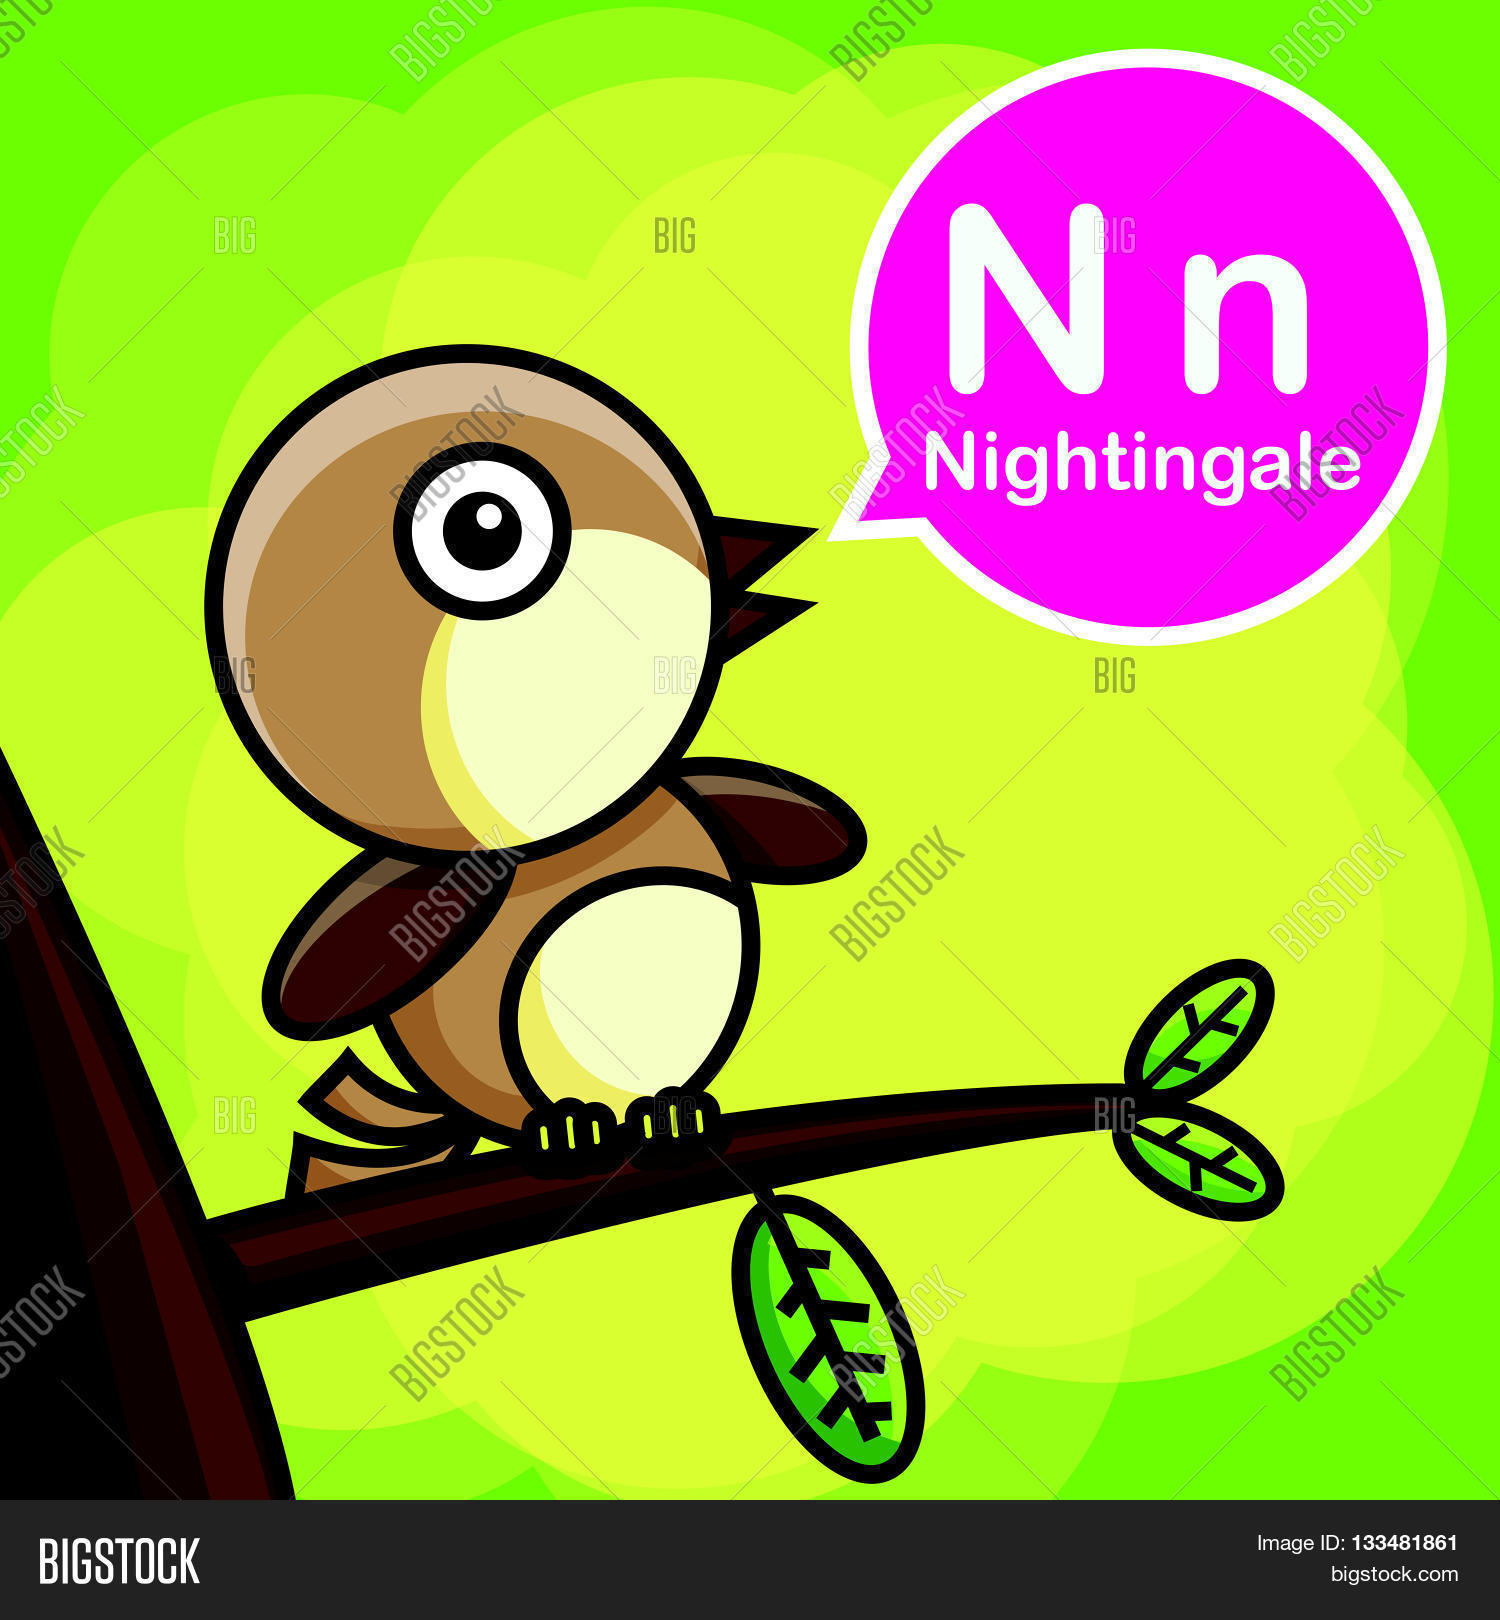 Image of: Kids Nightingale Animal Cartoon And Alphabet For Children To Learning Vector Illustration Eps10 Bigstock Nightingale Animal Vector Photo free Trial Bigstock